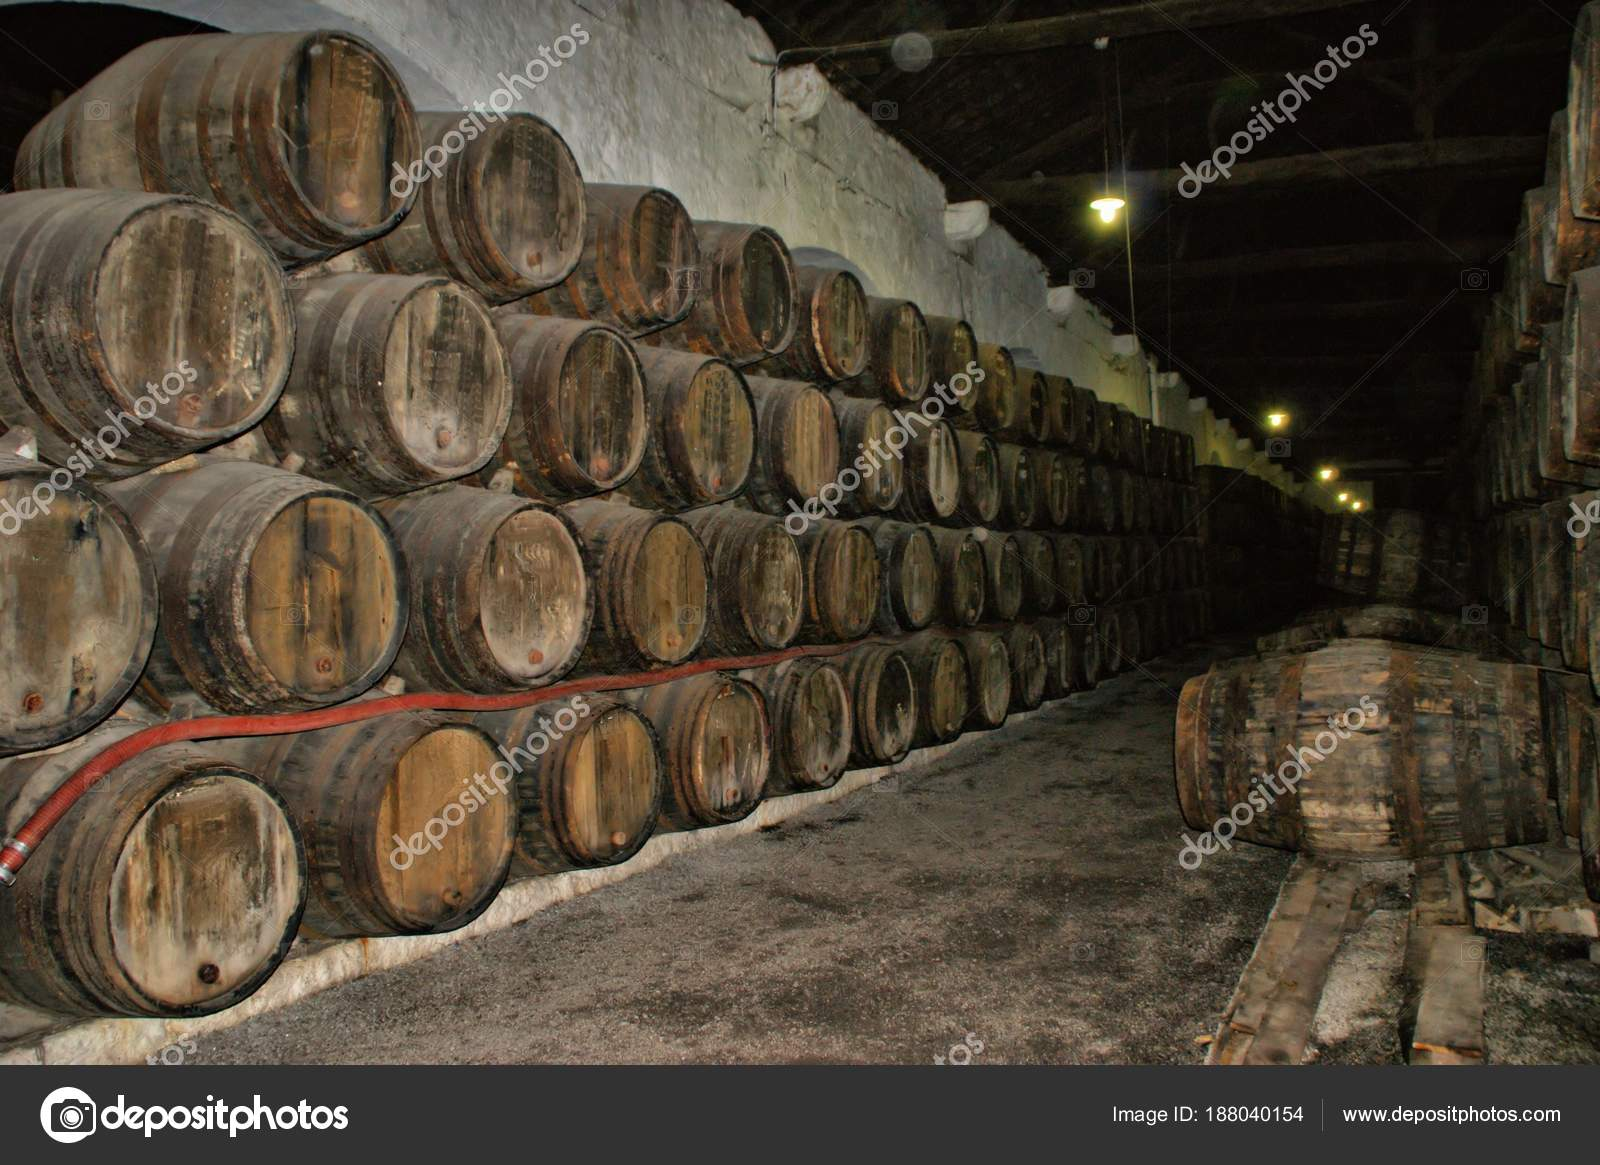 Port Wine Cellars in Vila Nova de Gaia, Portugal